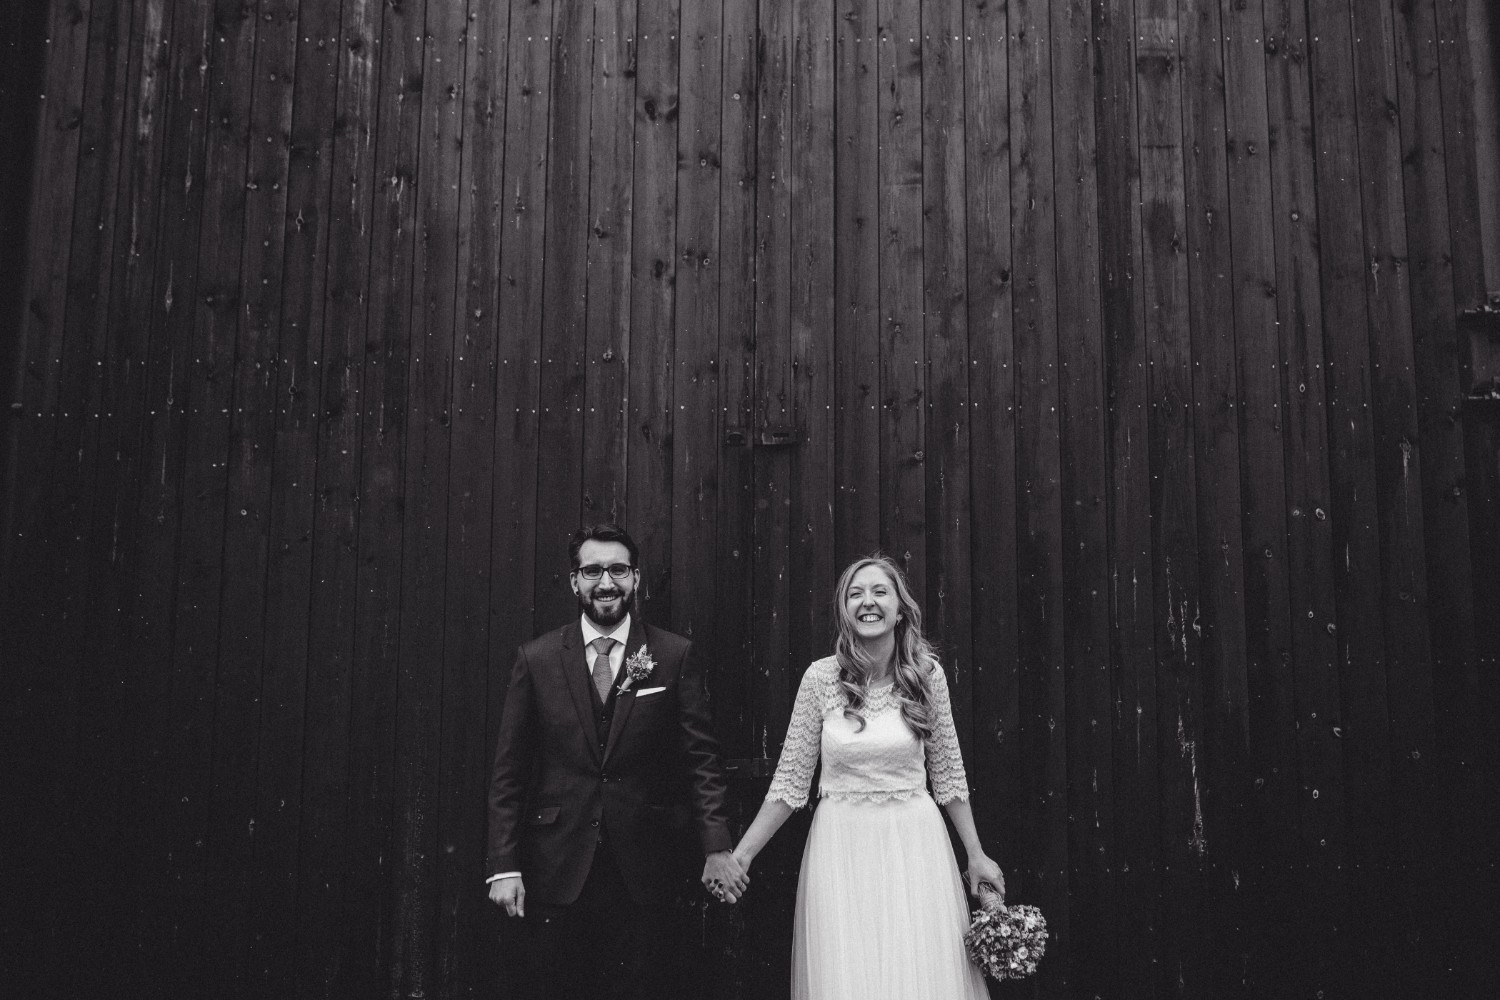 Liz + Dave Tewin Bury Farm Winter Wedding Naomijanephotography361.jpg